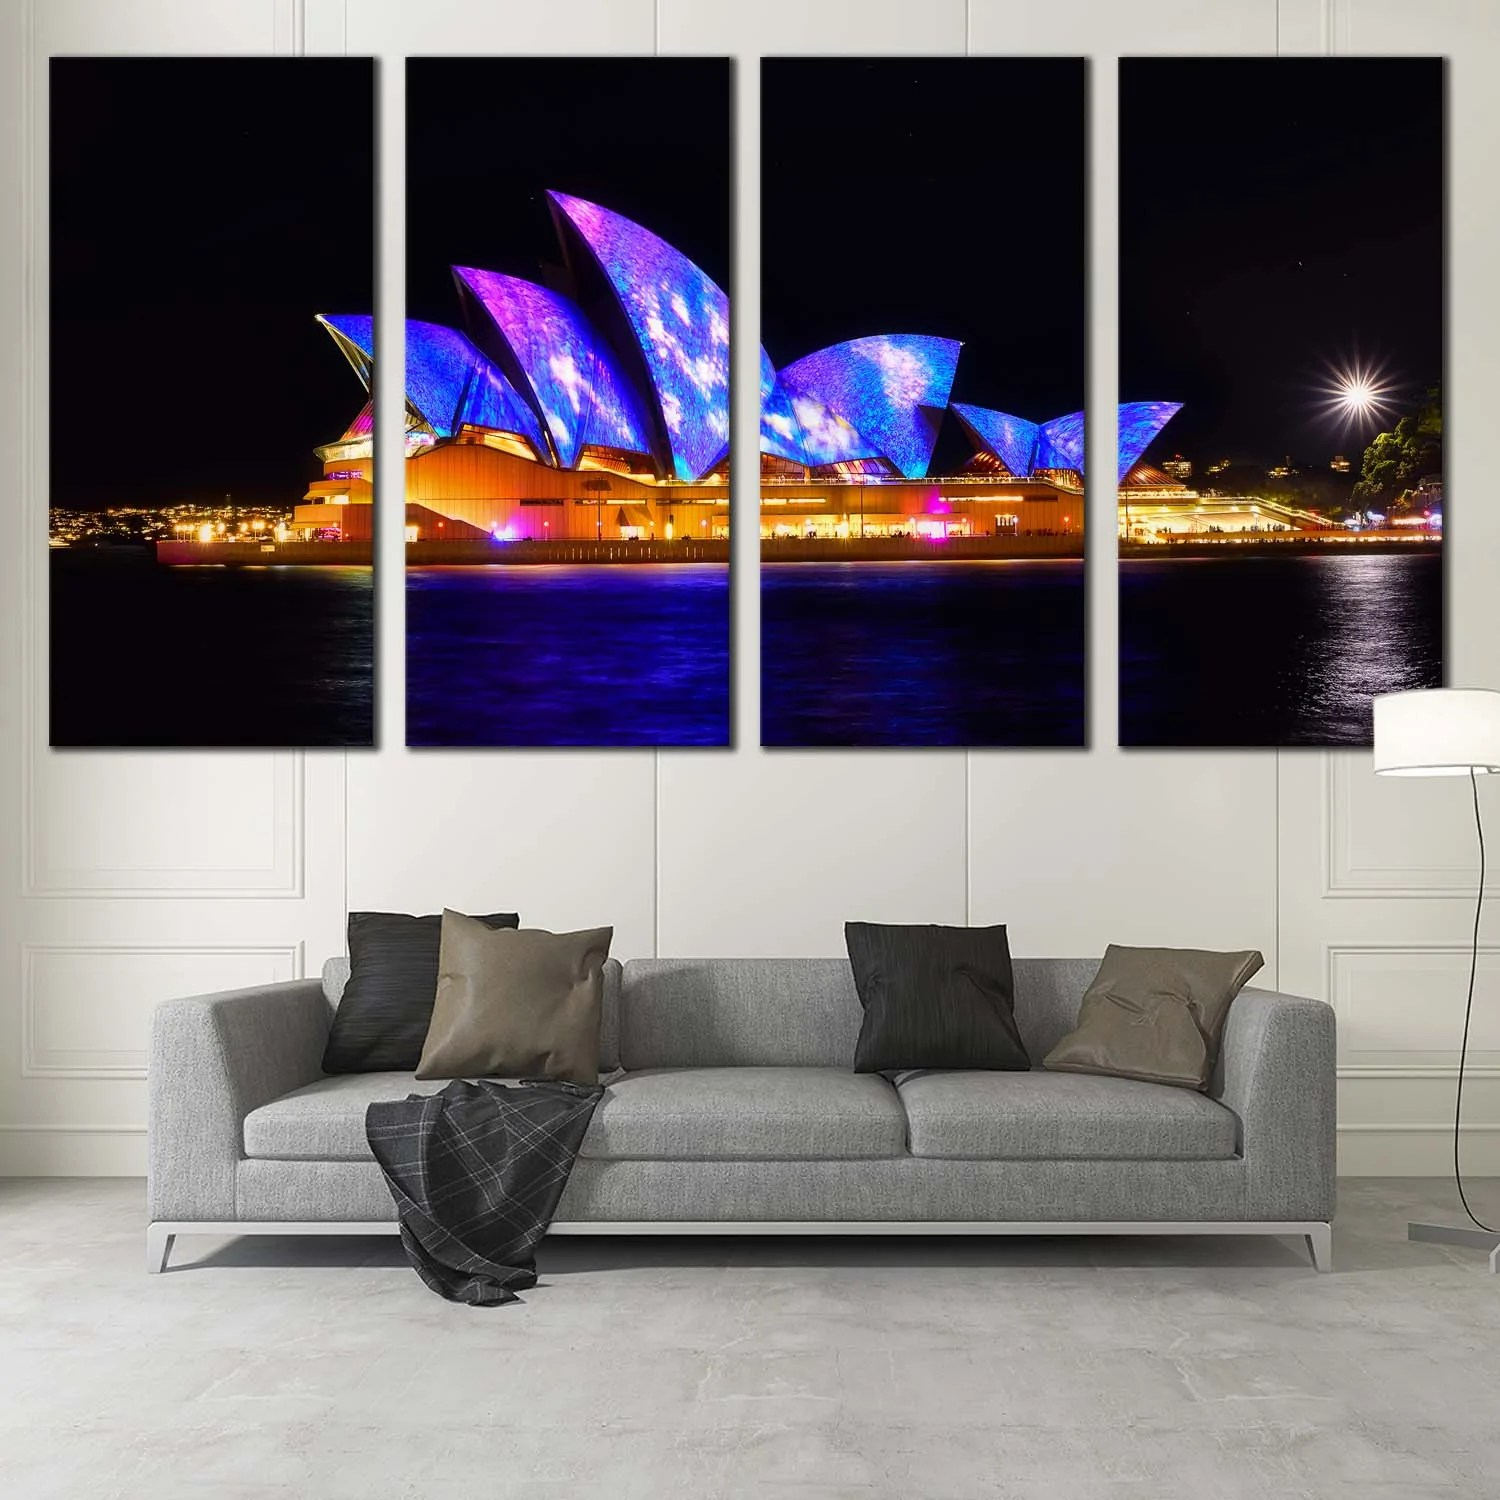 Wall Prints For Living Room Australia City Skyline Canvas Wall Art Black Australia Illuminated Sky 3 Piece Canvas Wall Art Blue Sydney Opera House Canvas Print Colourful City Light